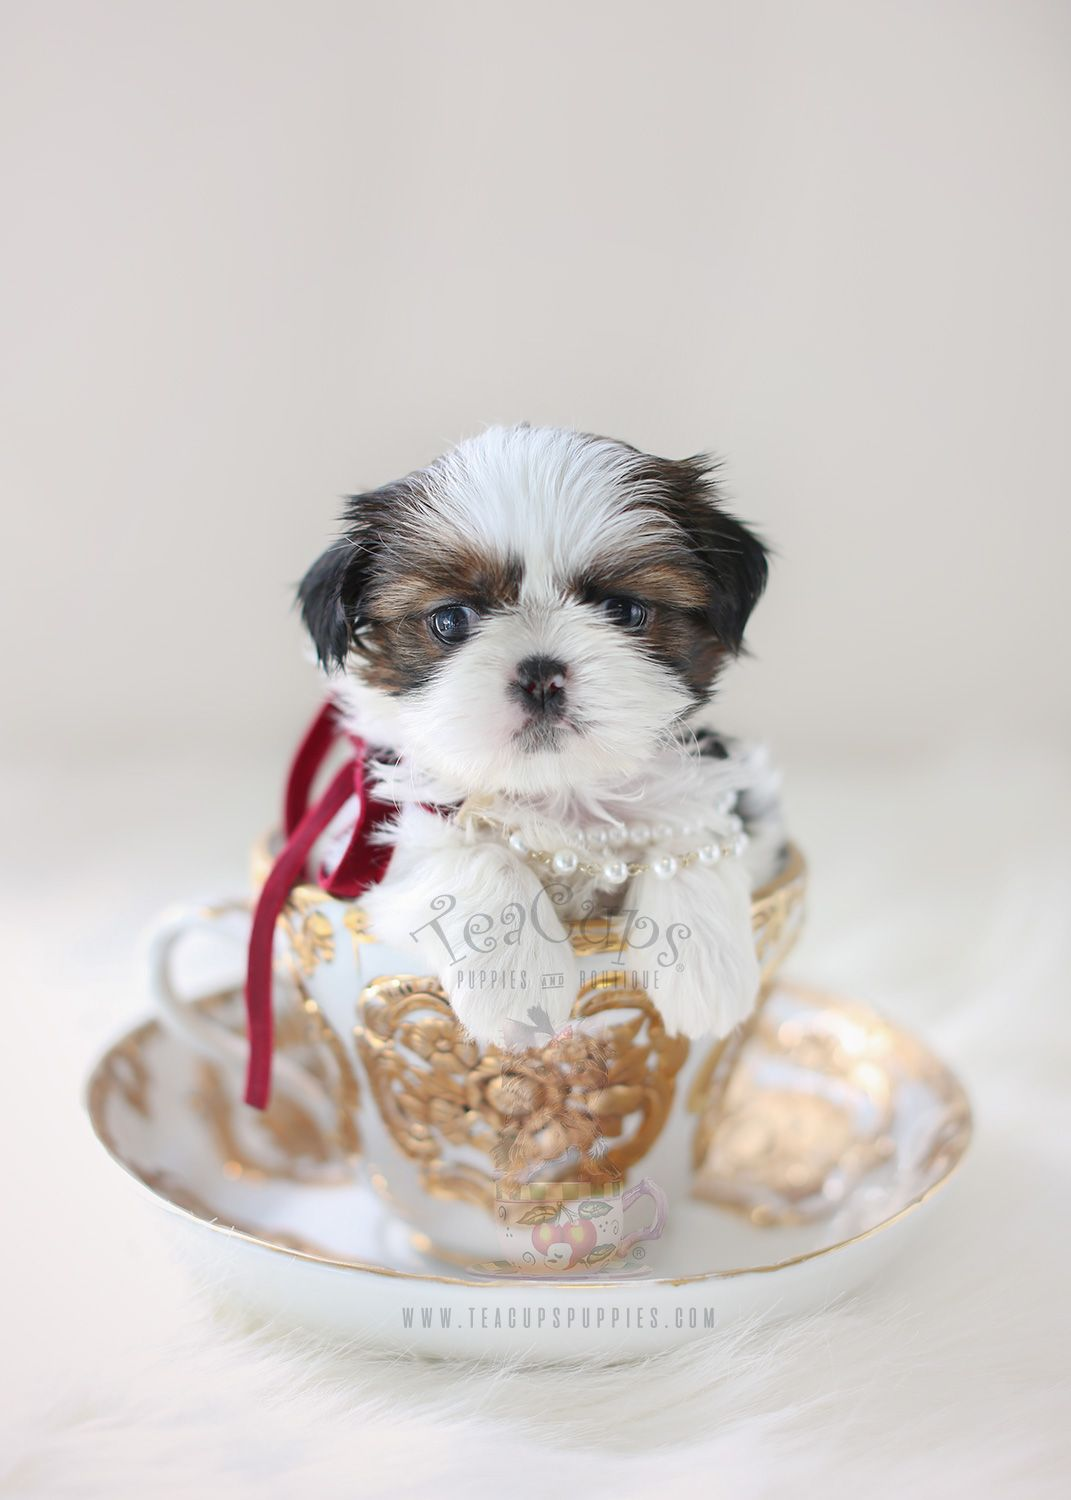 Tiny Type Shih Tzu Puppy For Sale 002 Teacup Puppies Shih Tzu